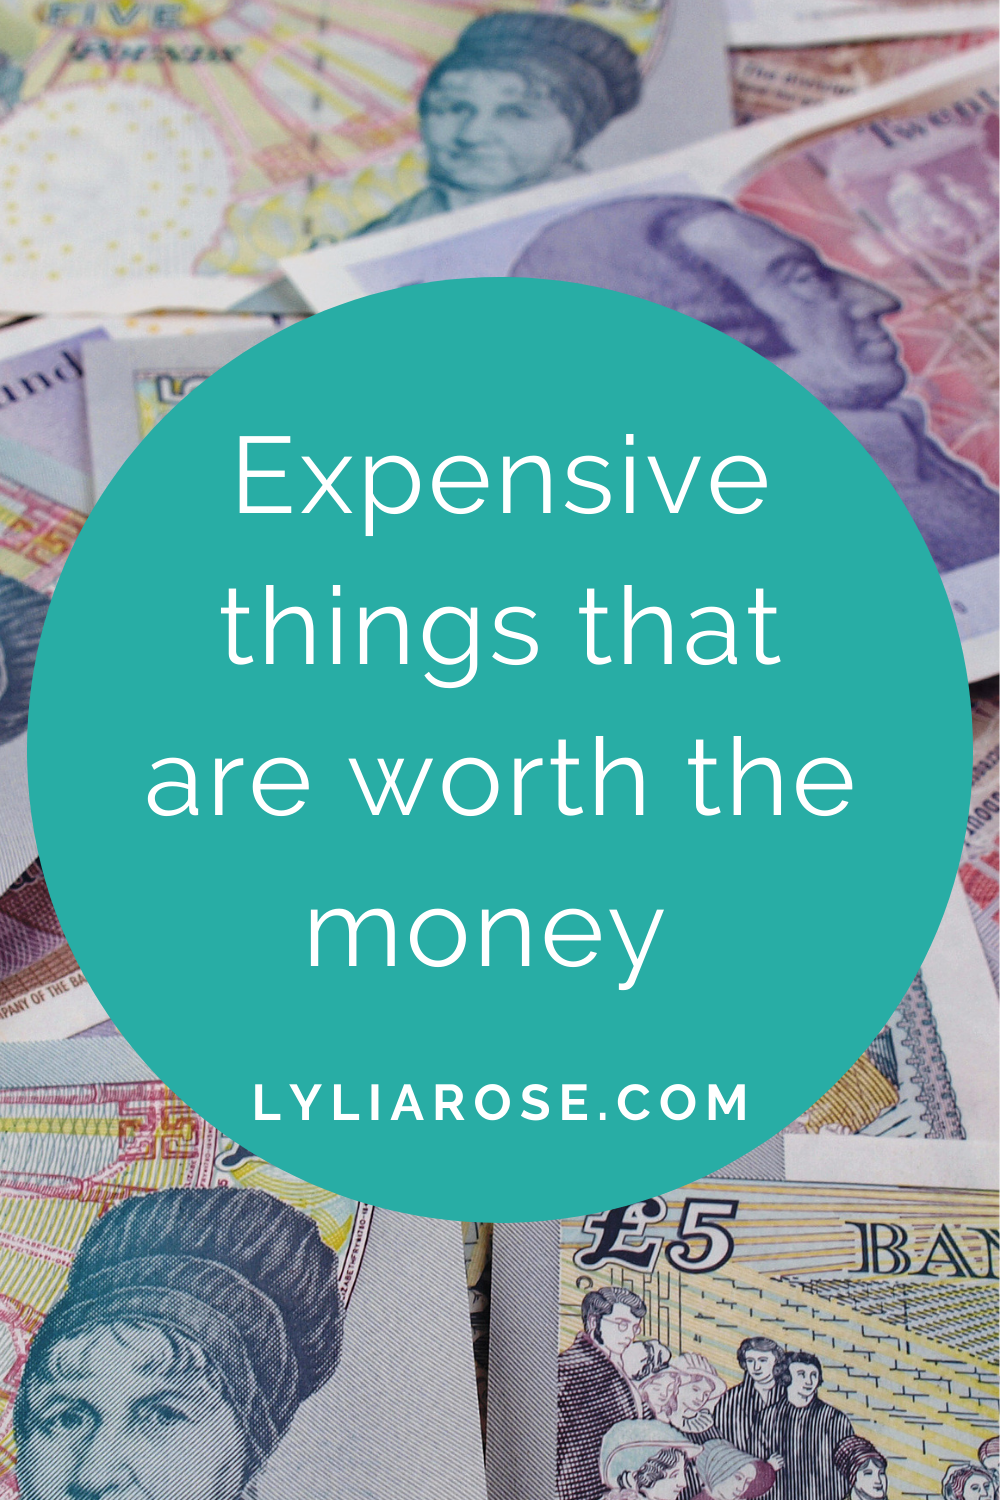 Expensive things that are worth the money